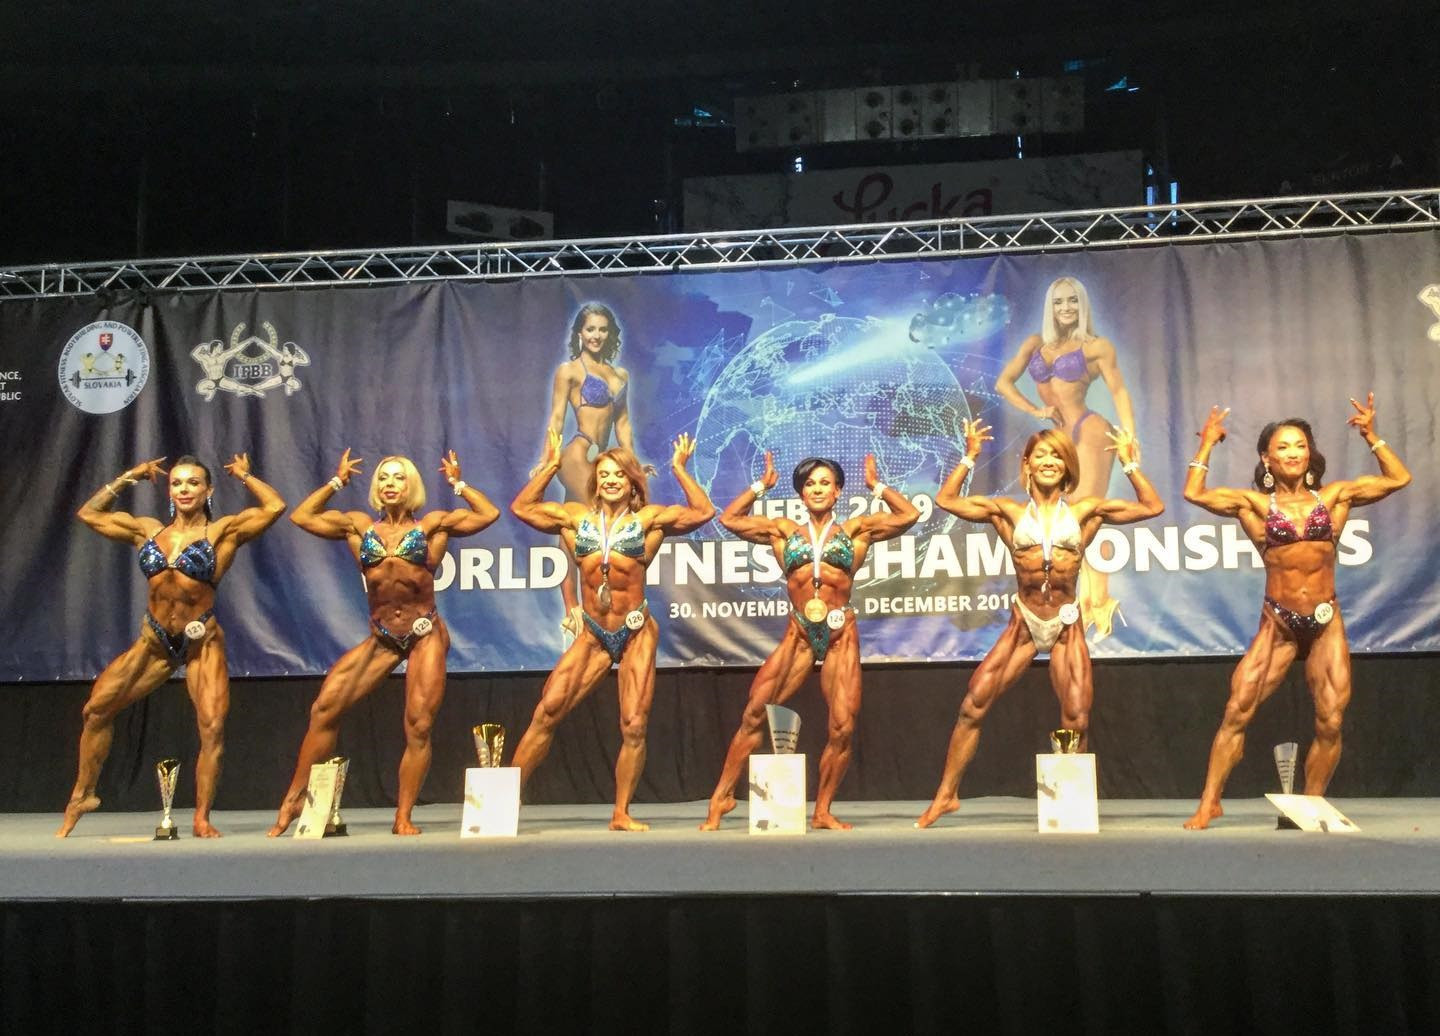 IFBB 2019 World Fitness Championships: Day one of competition